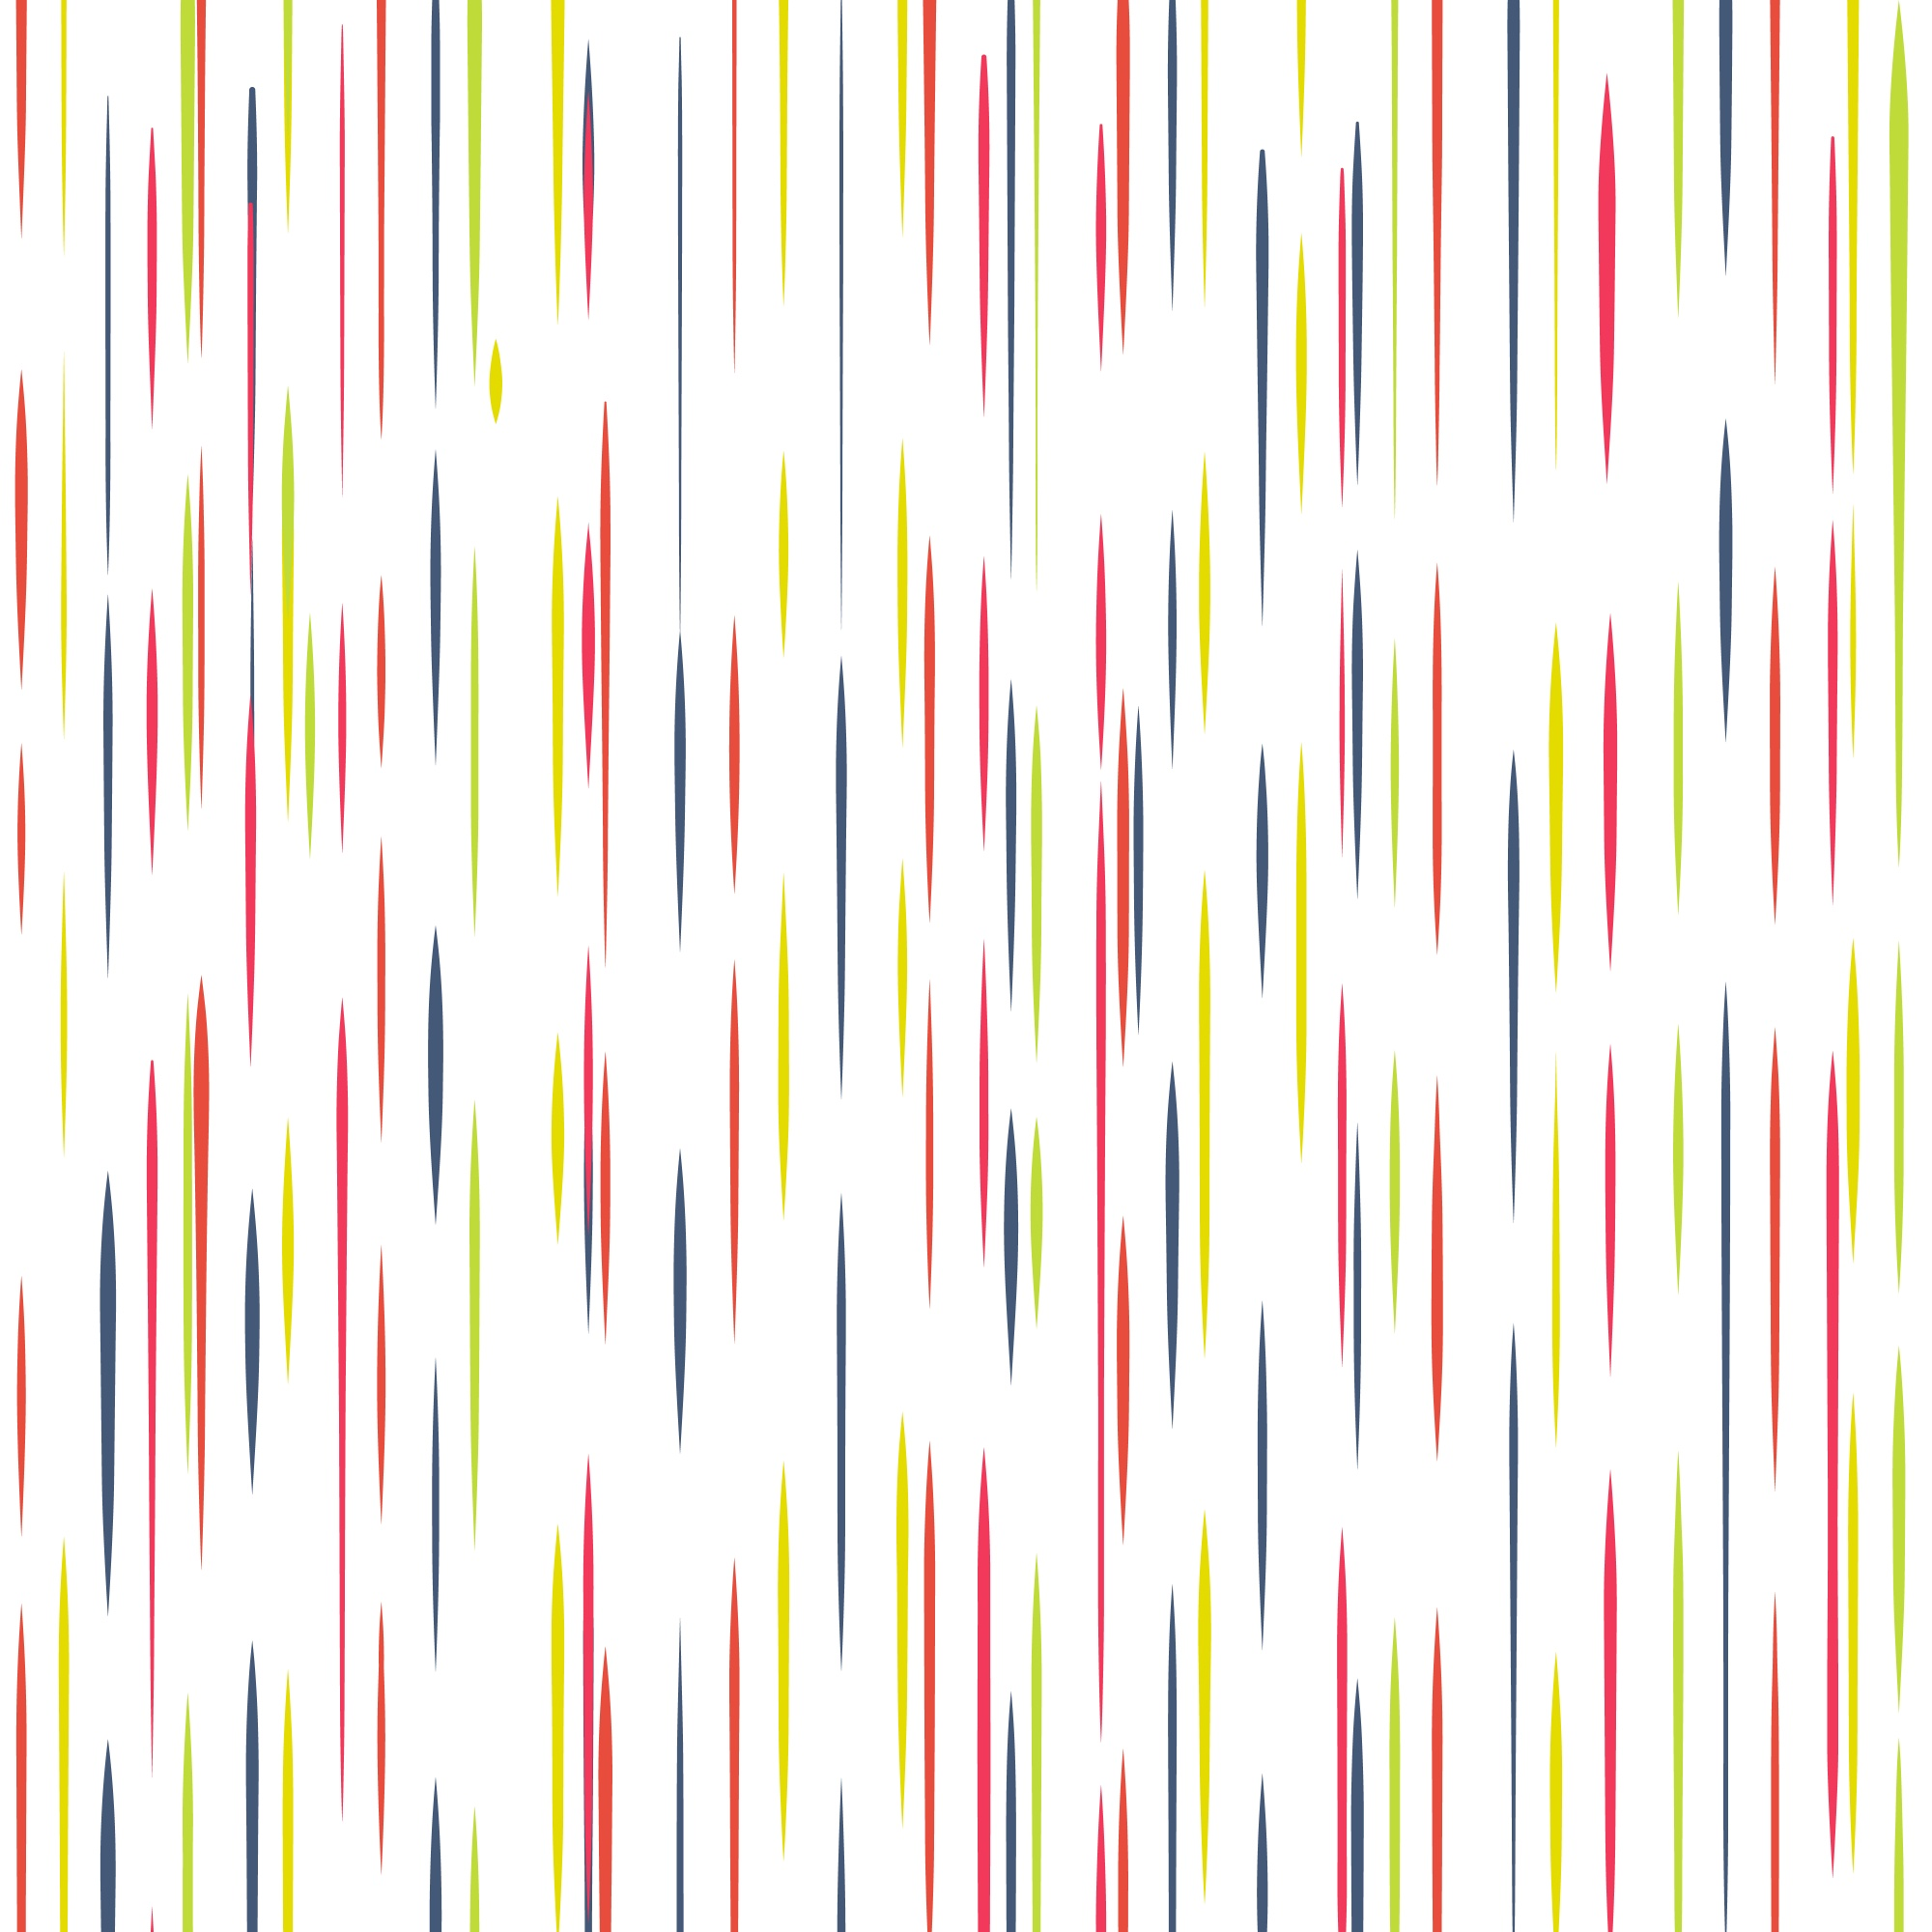 Colorful vertical lines background